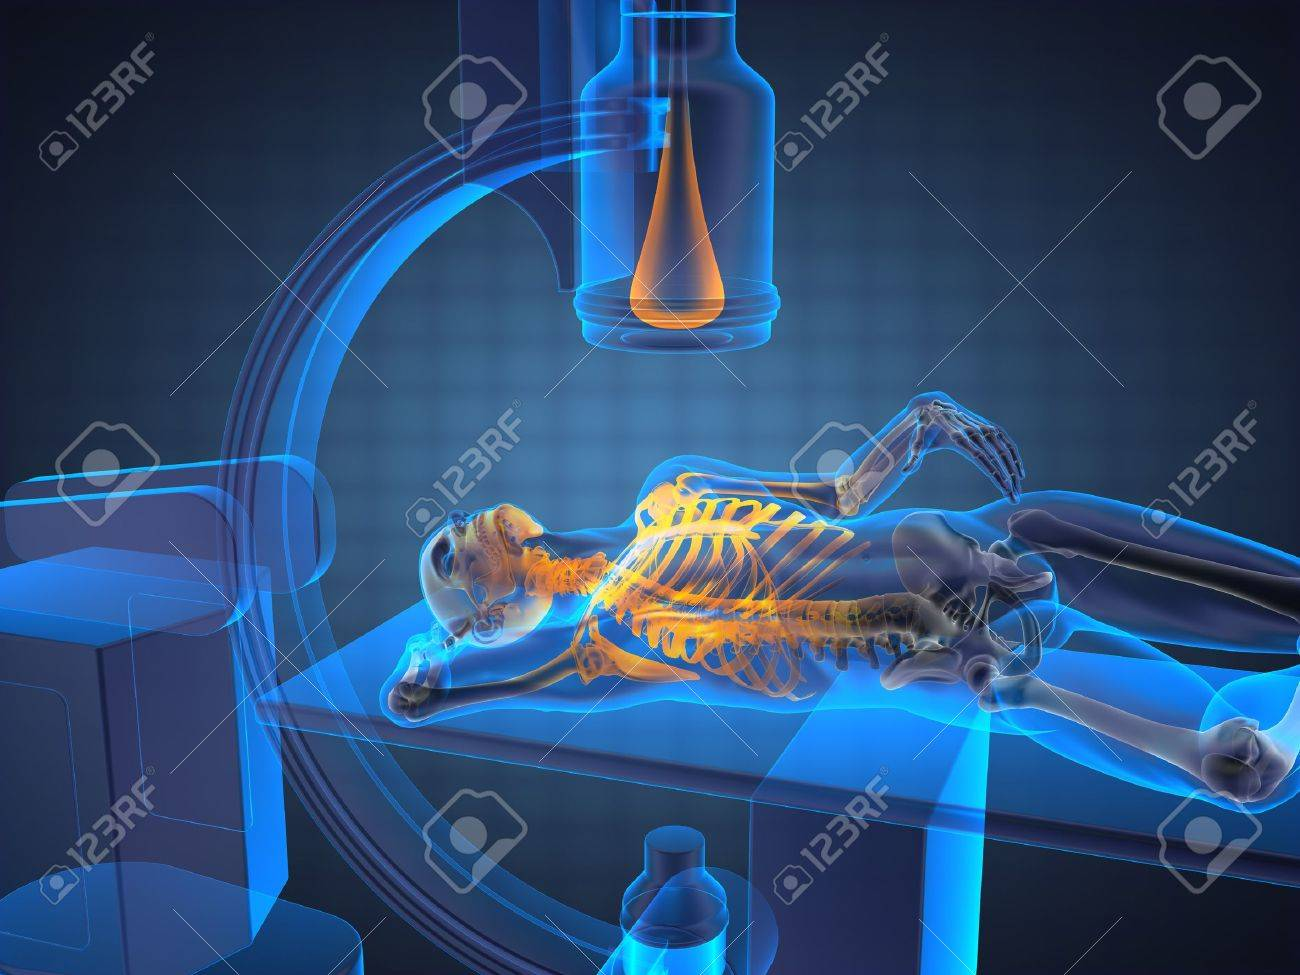 x-ray examination made in 3D graphics Stock Photo - 13035919